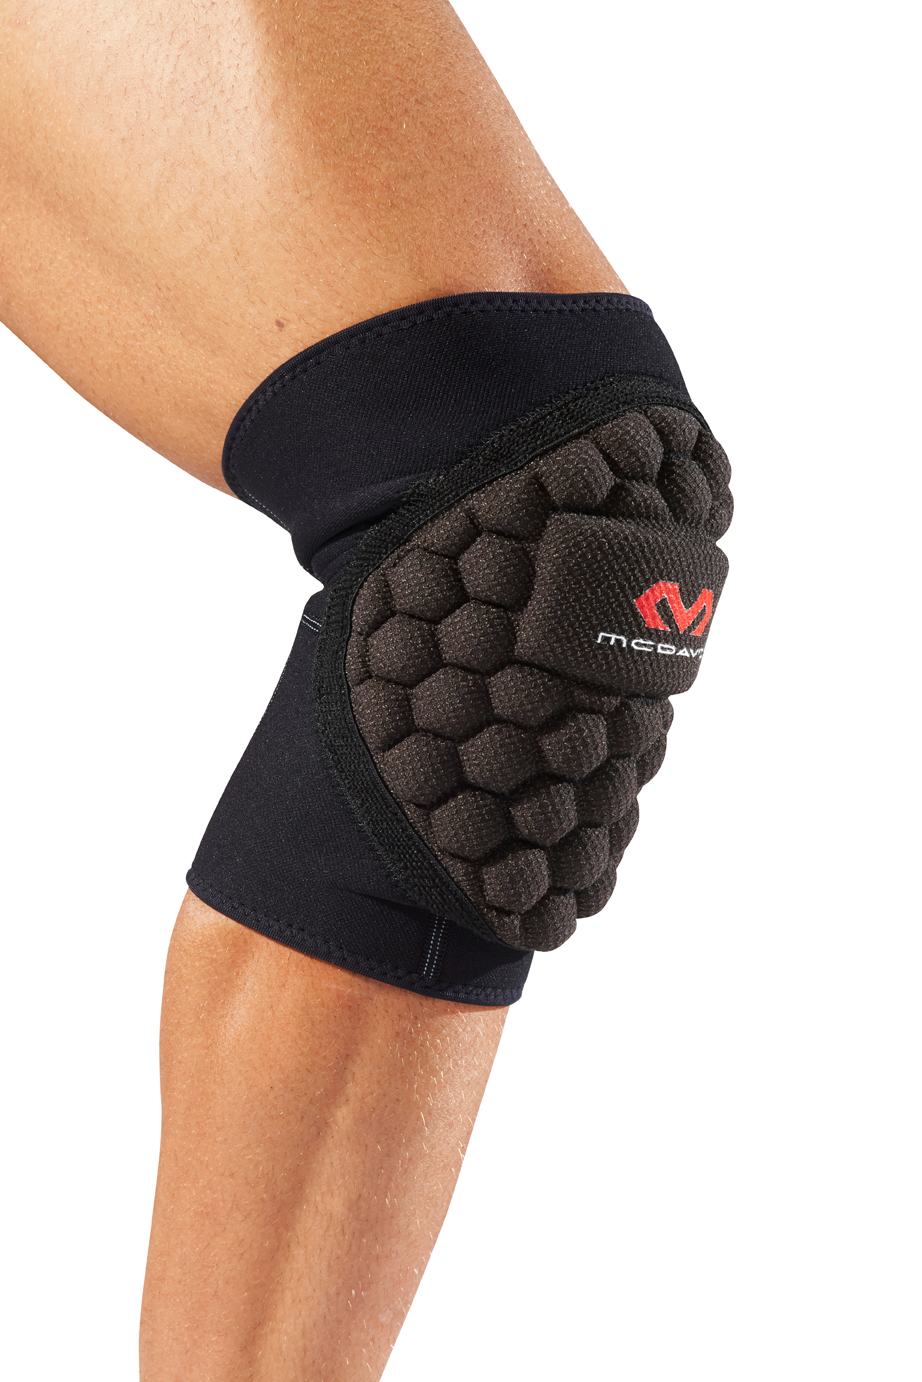 Výprodej - Handball Knee Pad/single - McDavid